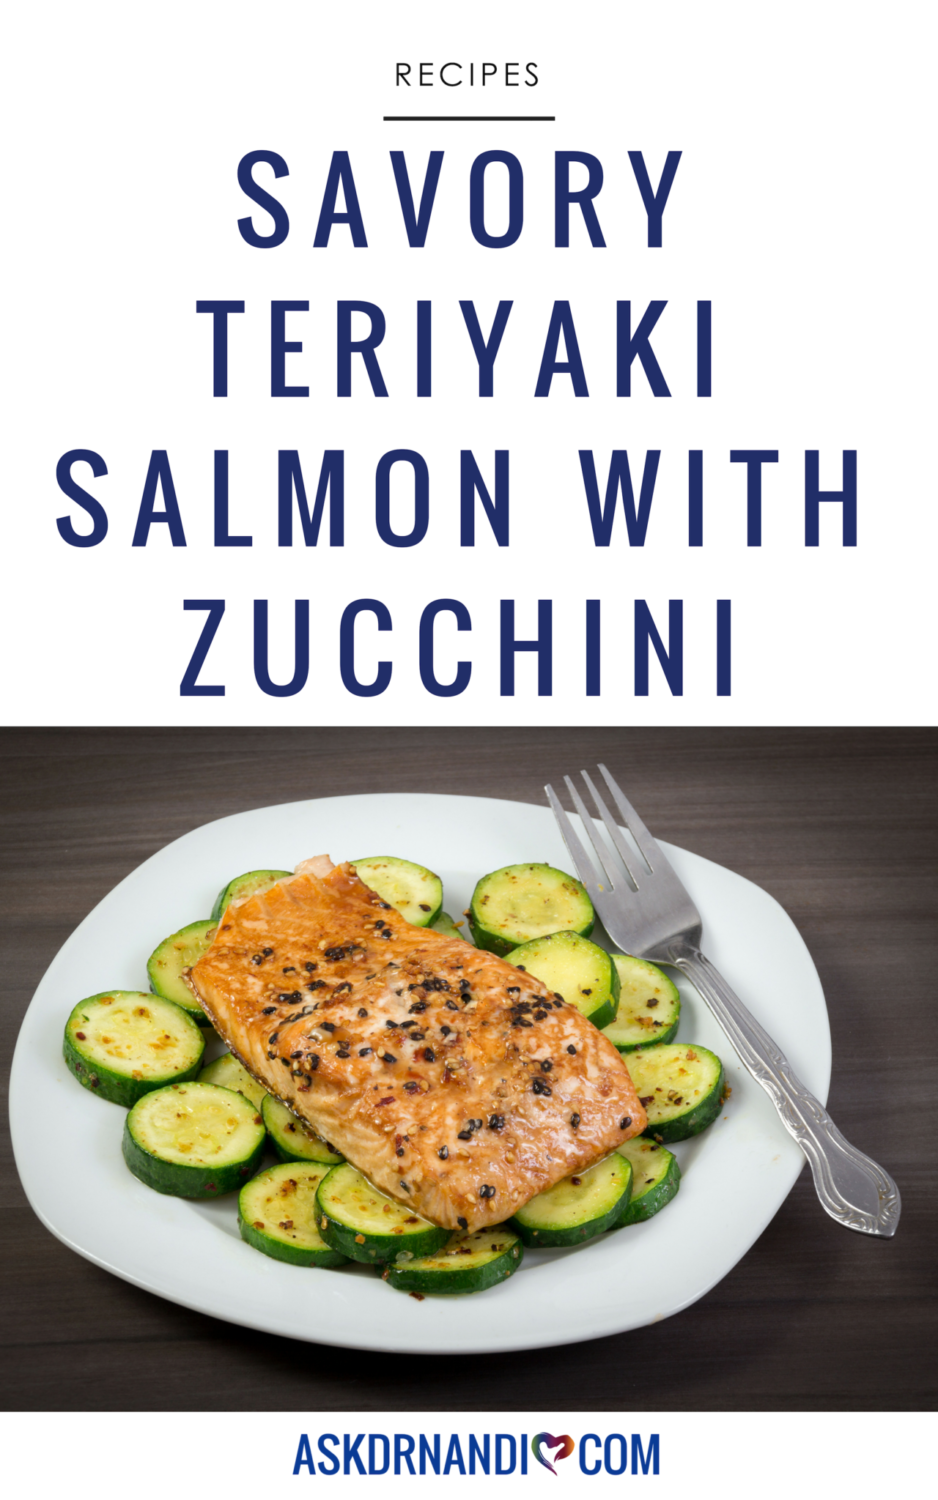 This Teriyaki Salmon recipe is rich in protein, heart-helping omega-3 fatty acids, and vitamin D!